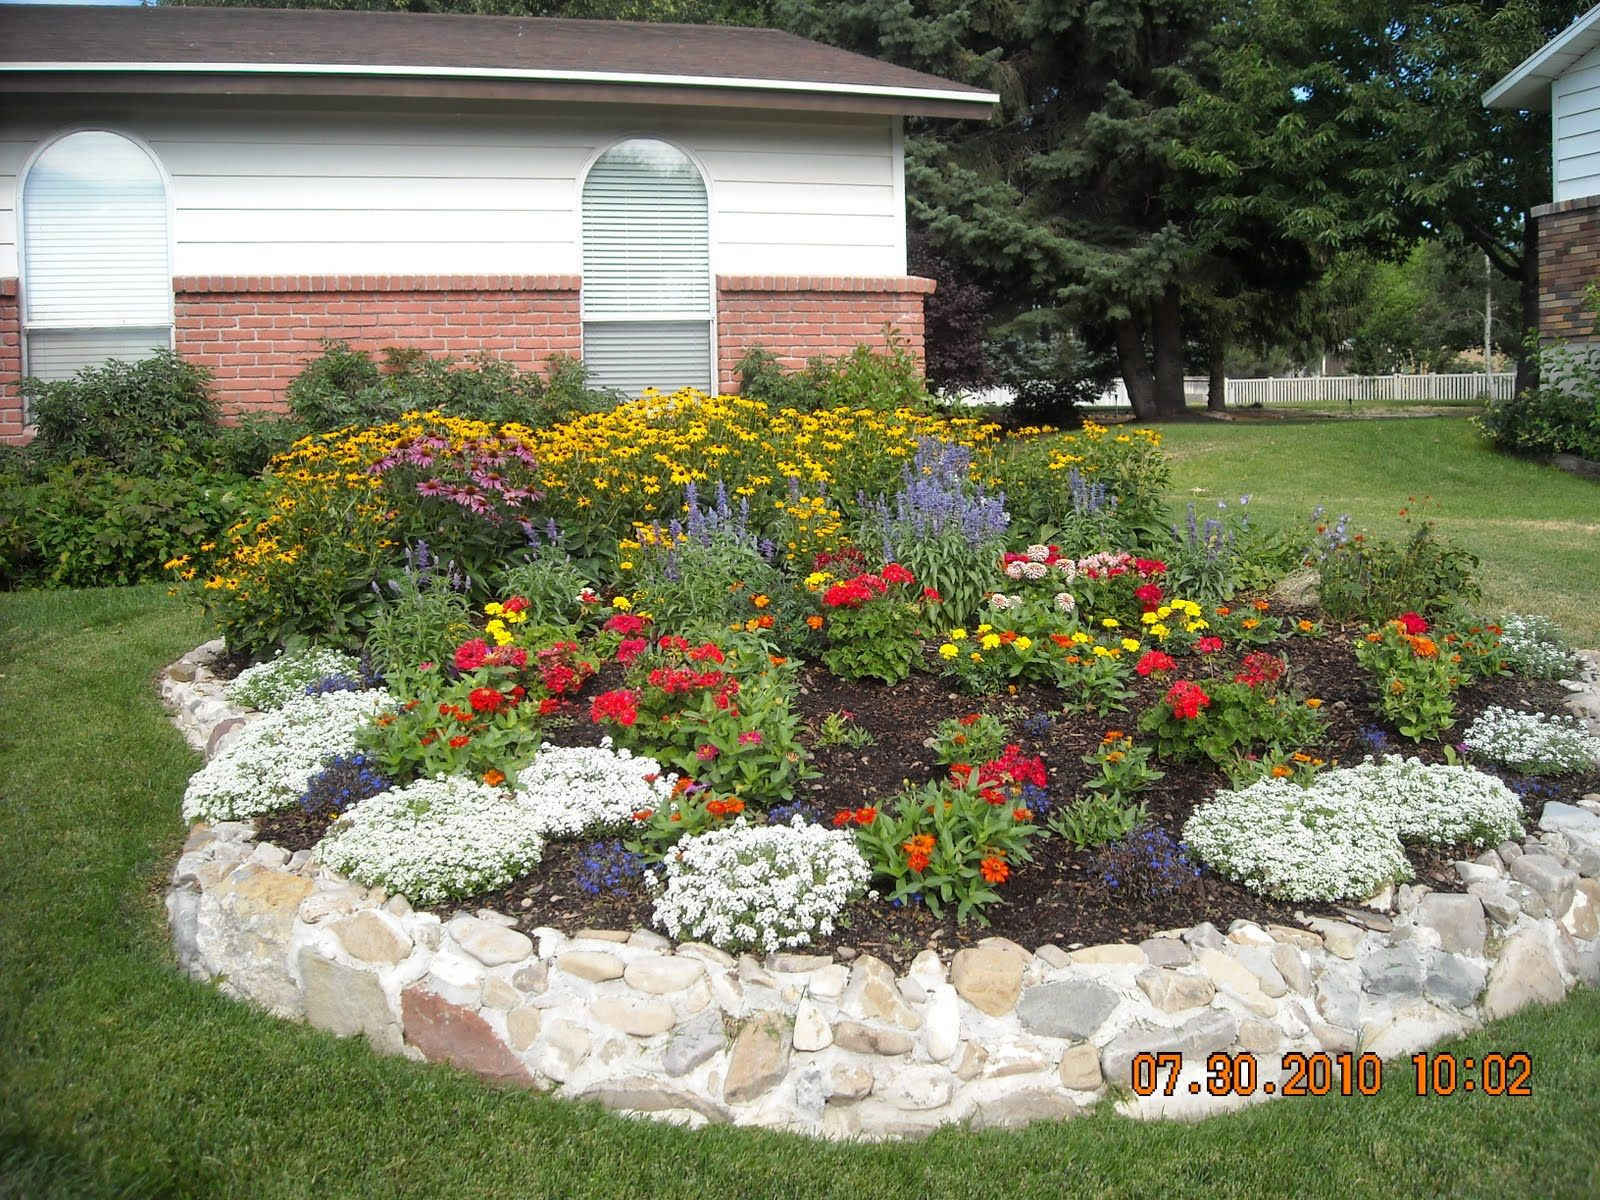 Planting Beds Design Ideas basic design principles and styles for garden beds Flower Beds This Is How The Flower Bed Looks After Having To Cut Out The